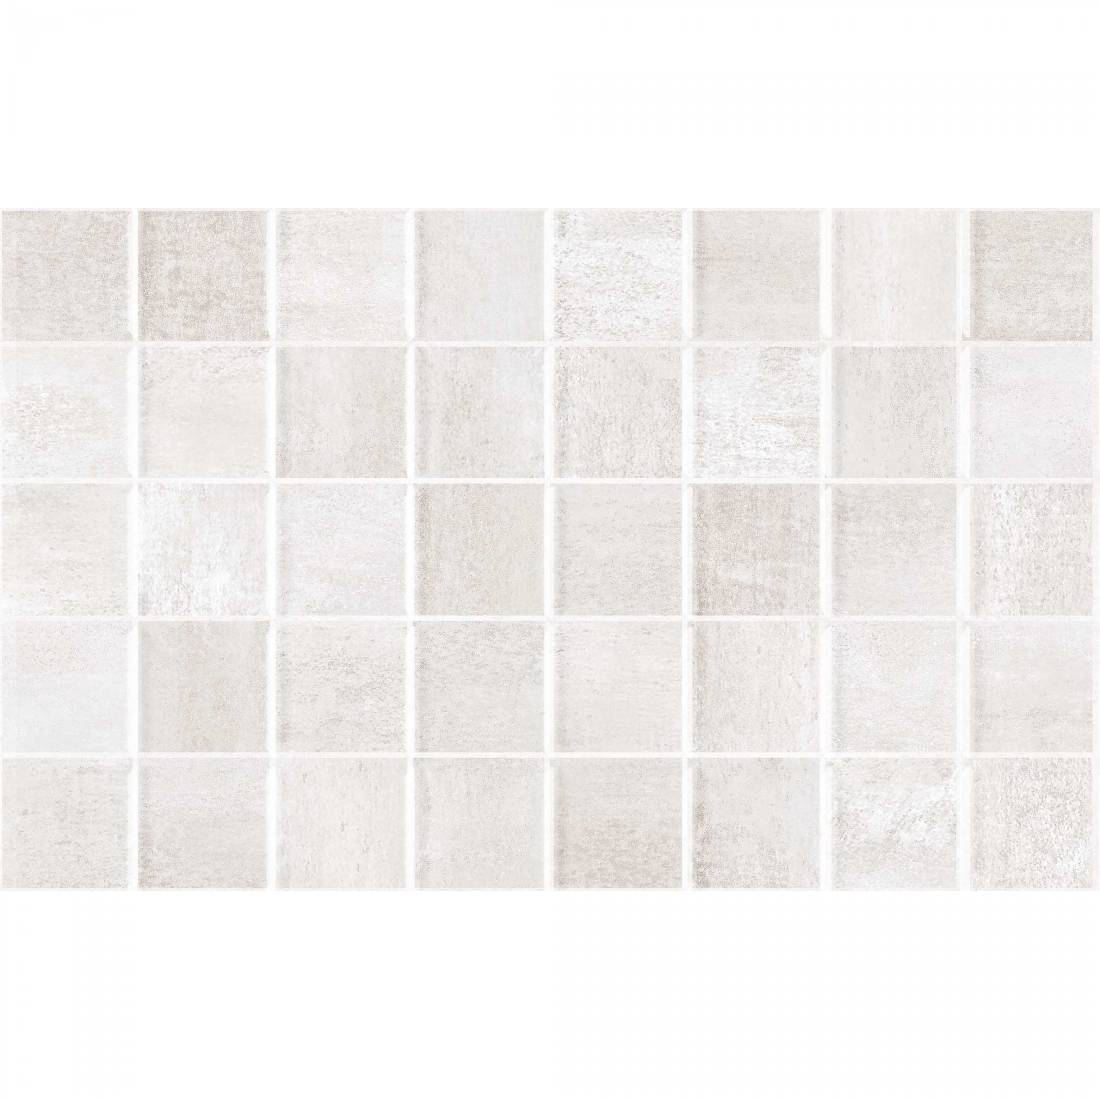 Corum Decor 25x40 Blanco Matt 1